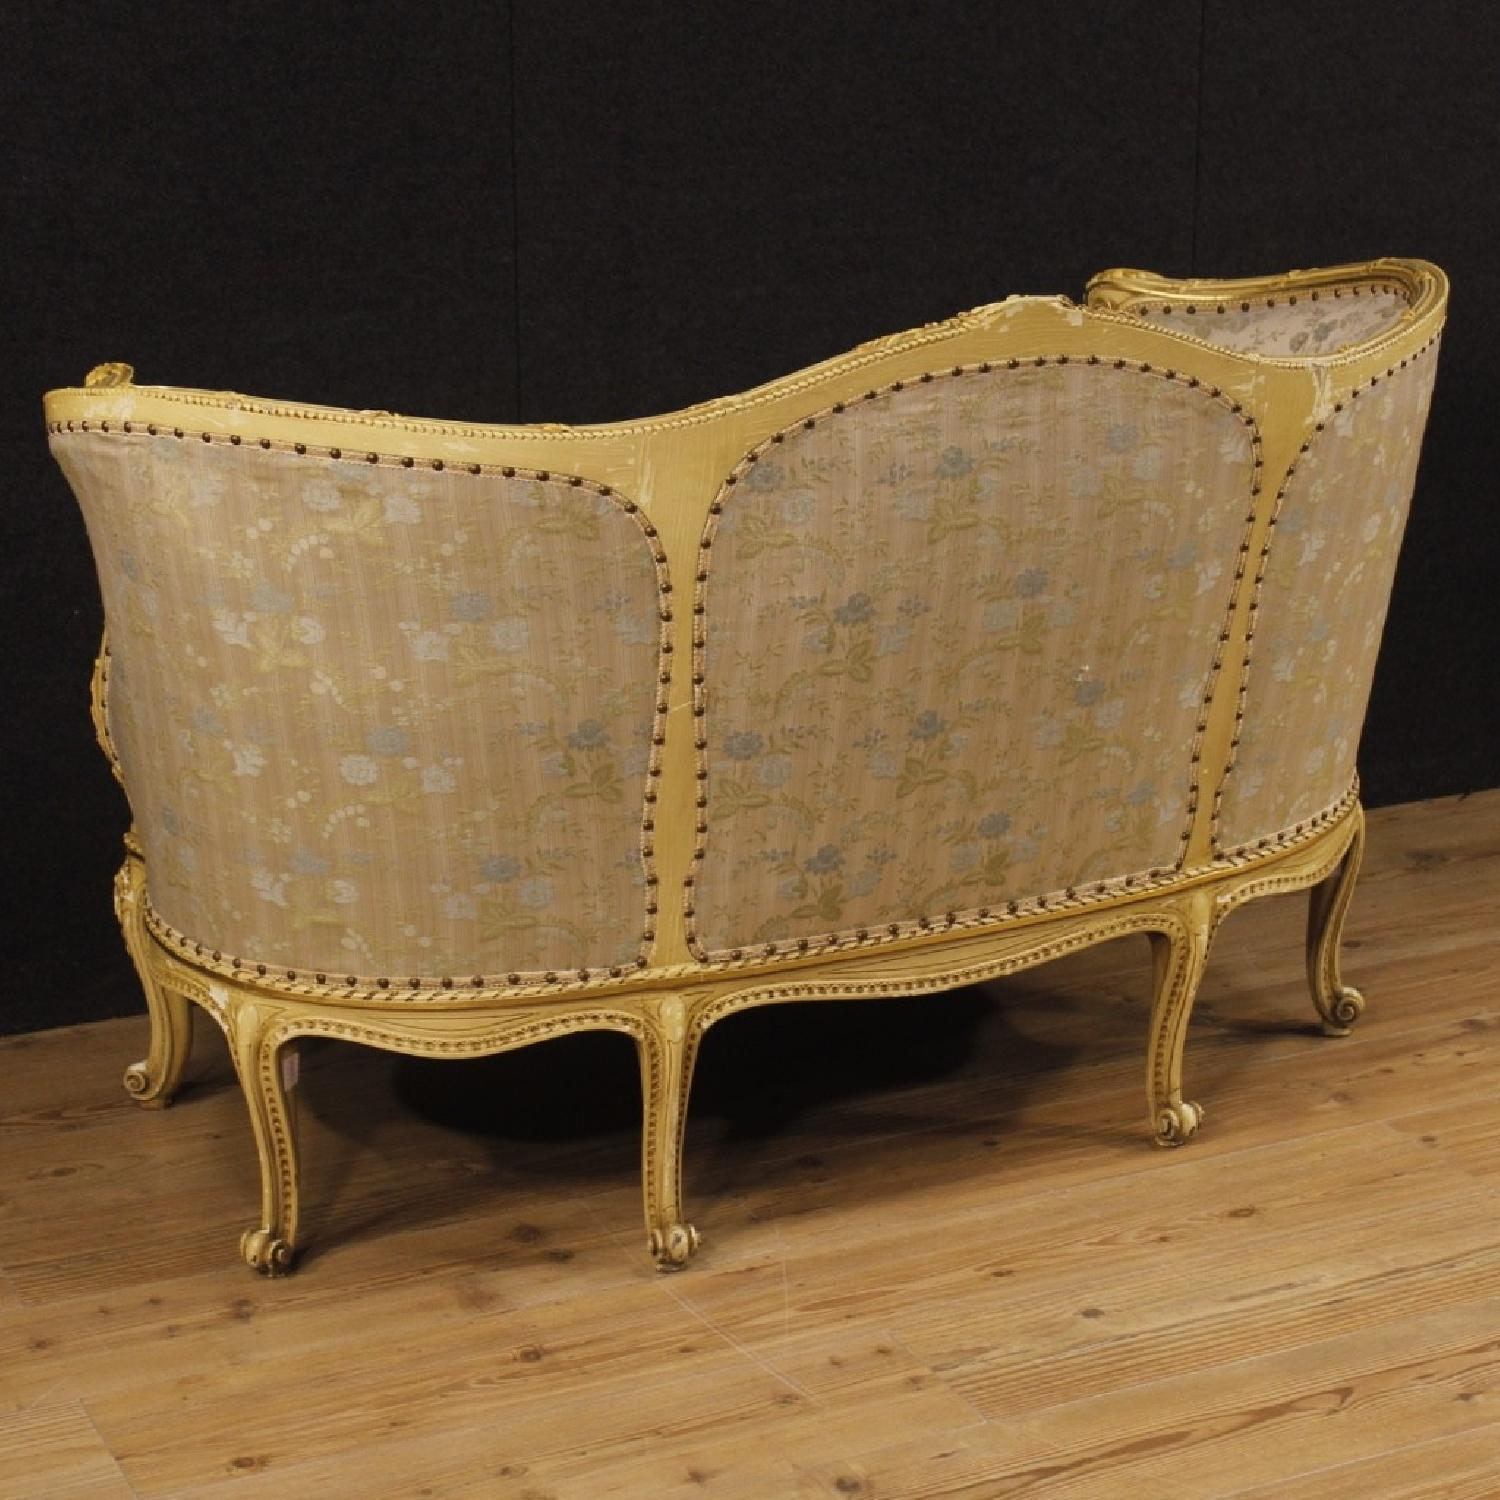 Italian Corbeille Sofa In Lacquered Wood w/ Floral Fabric